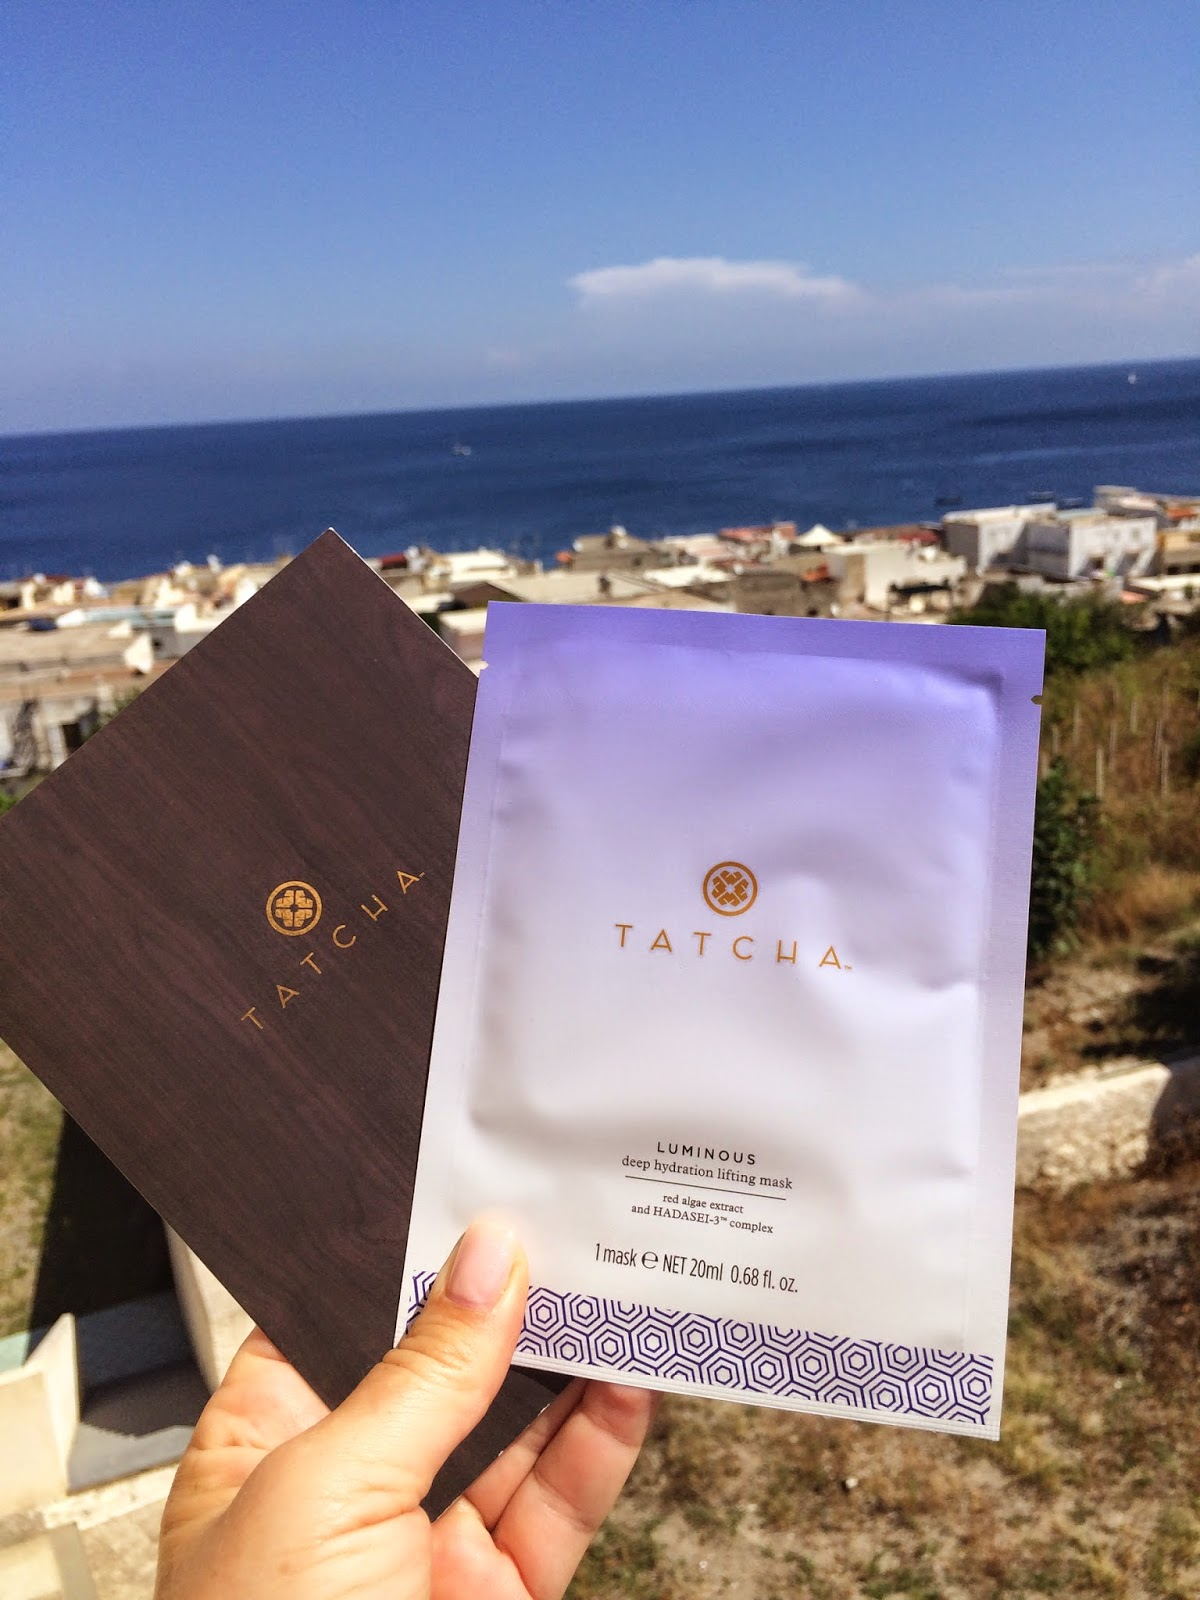 Glam-Italia-Tour-Tatcha-Luminous-Deep-Hydration-Lifting-Mask-Lipari-Aoelian-Islands